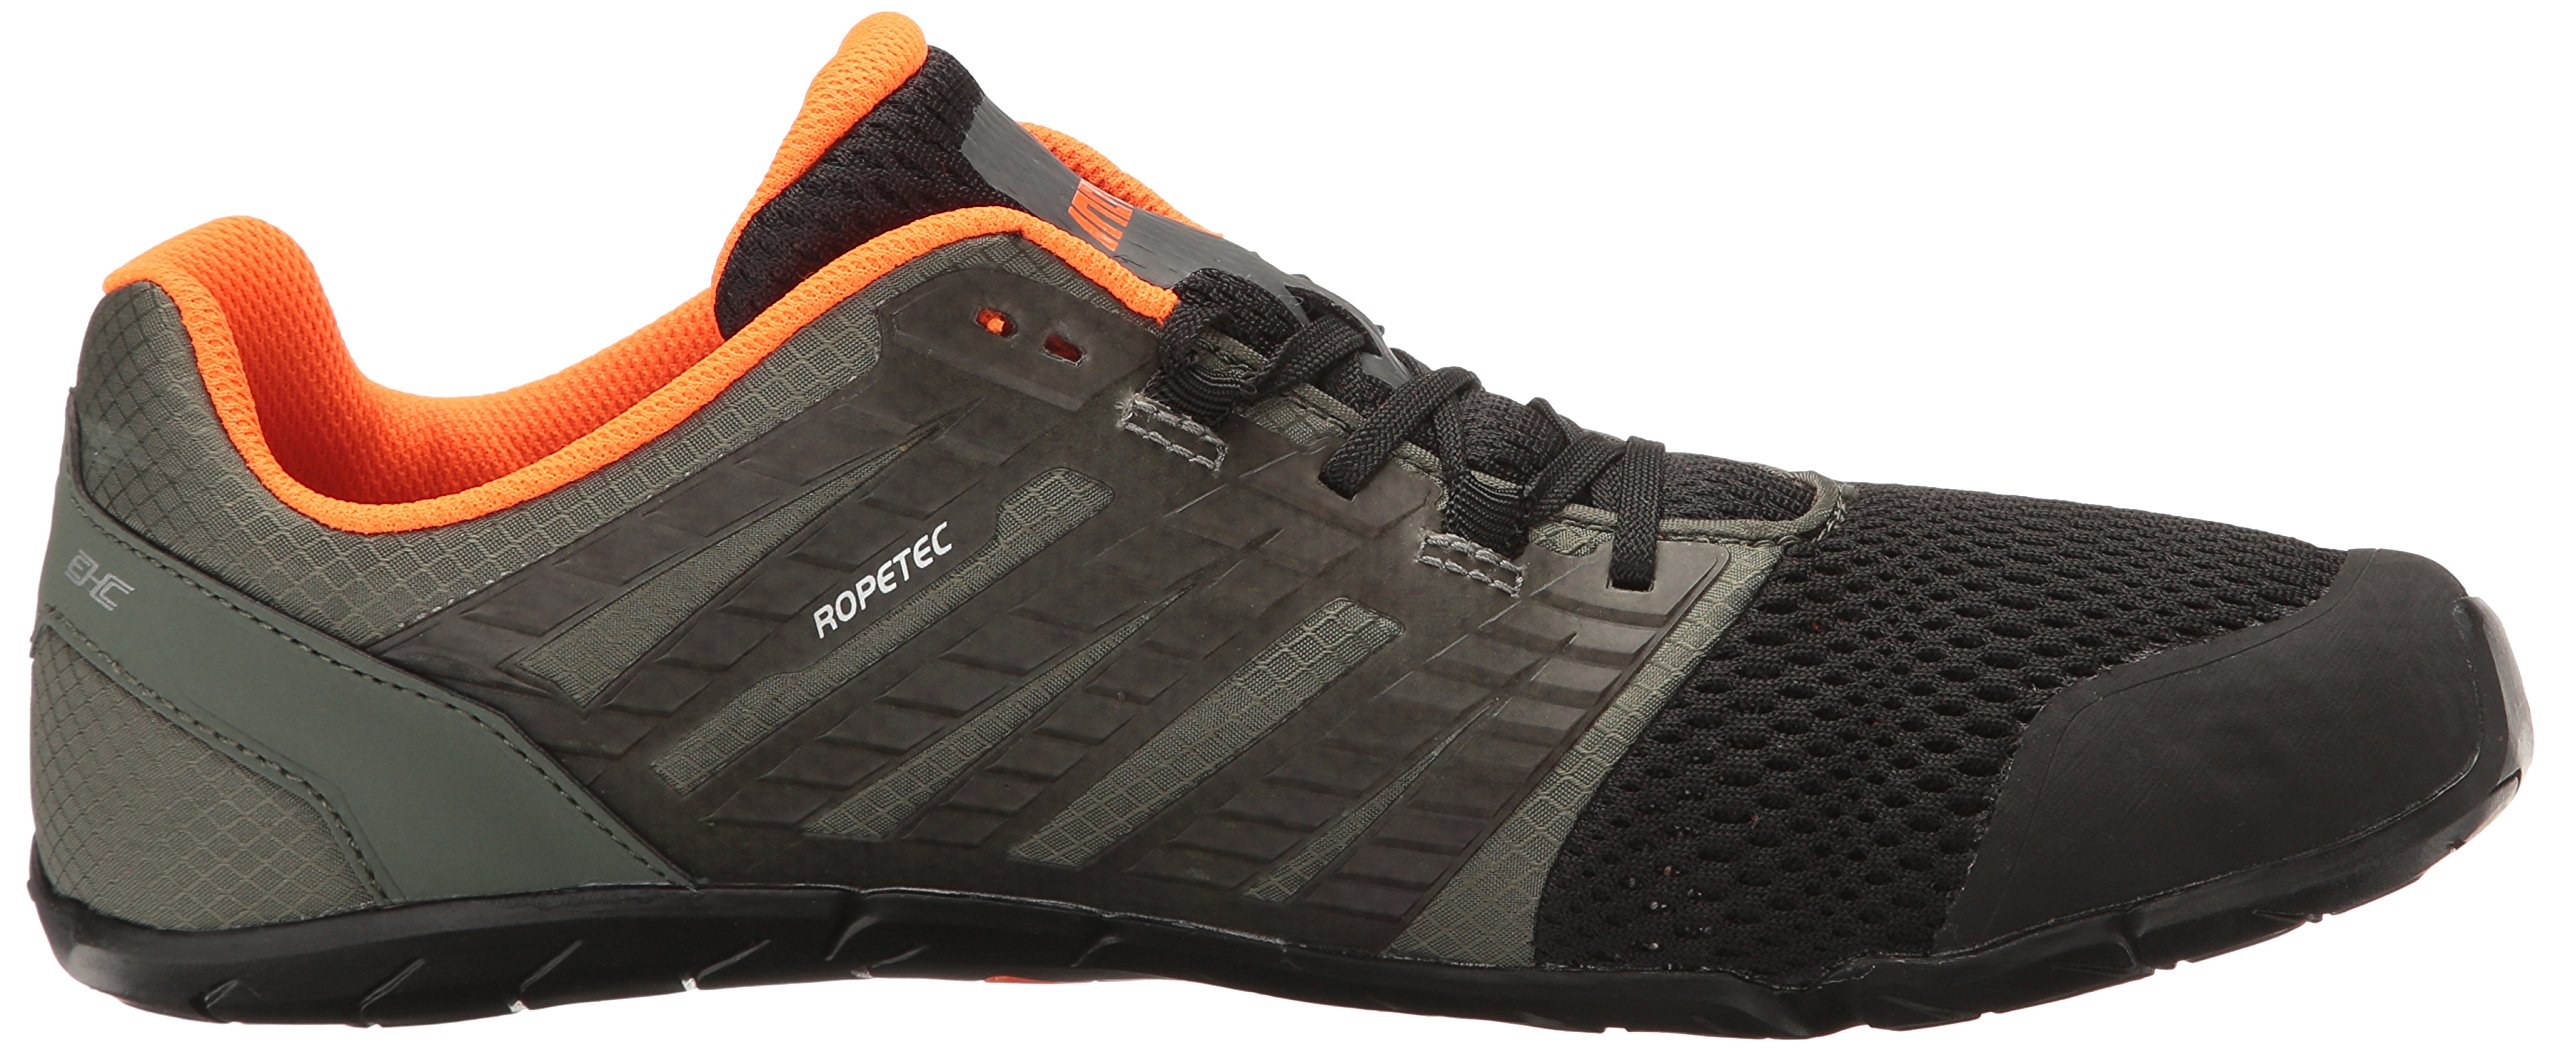 Inov-8 Men's Bare-XF 210 v2 (M) Cross Trainer Grey/Black/Orange 11 D US by Inov-8 (Image #7)